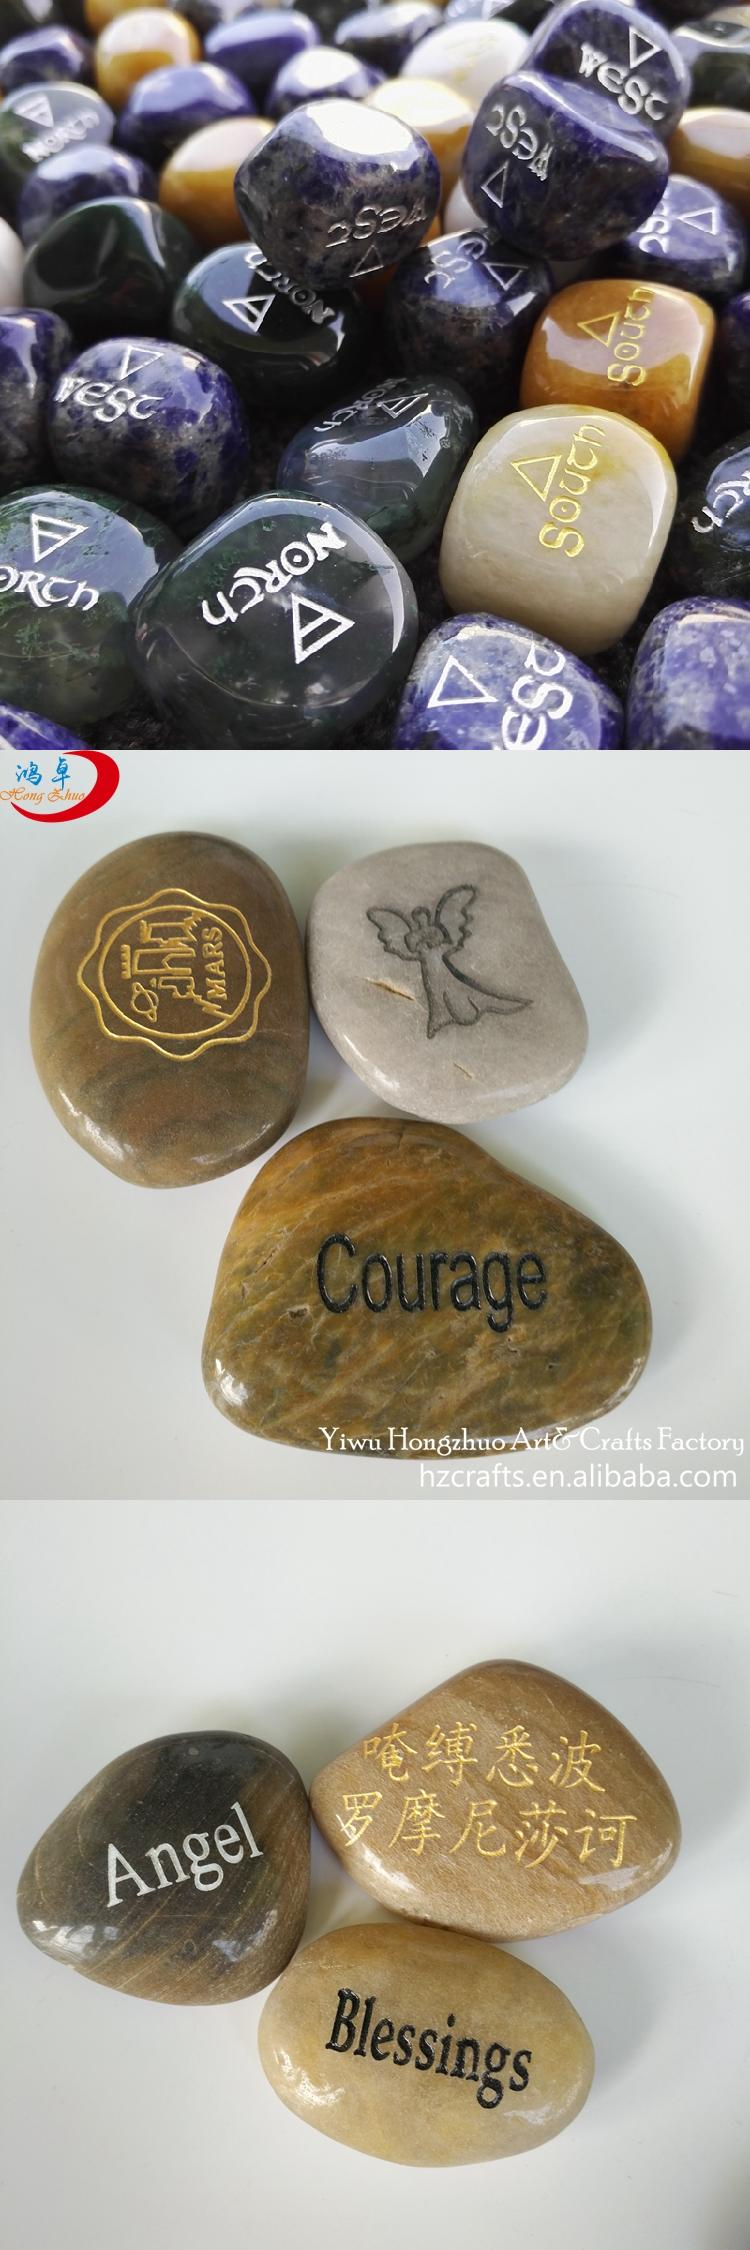 Custom black engraved river stones etched inspirational words as gifts